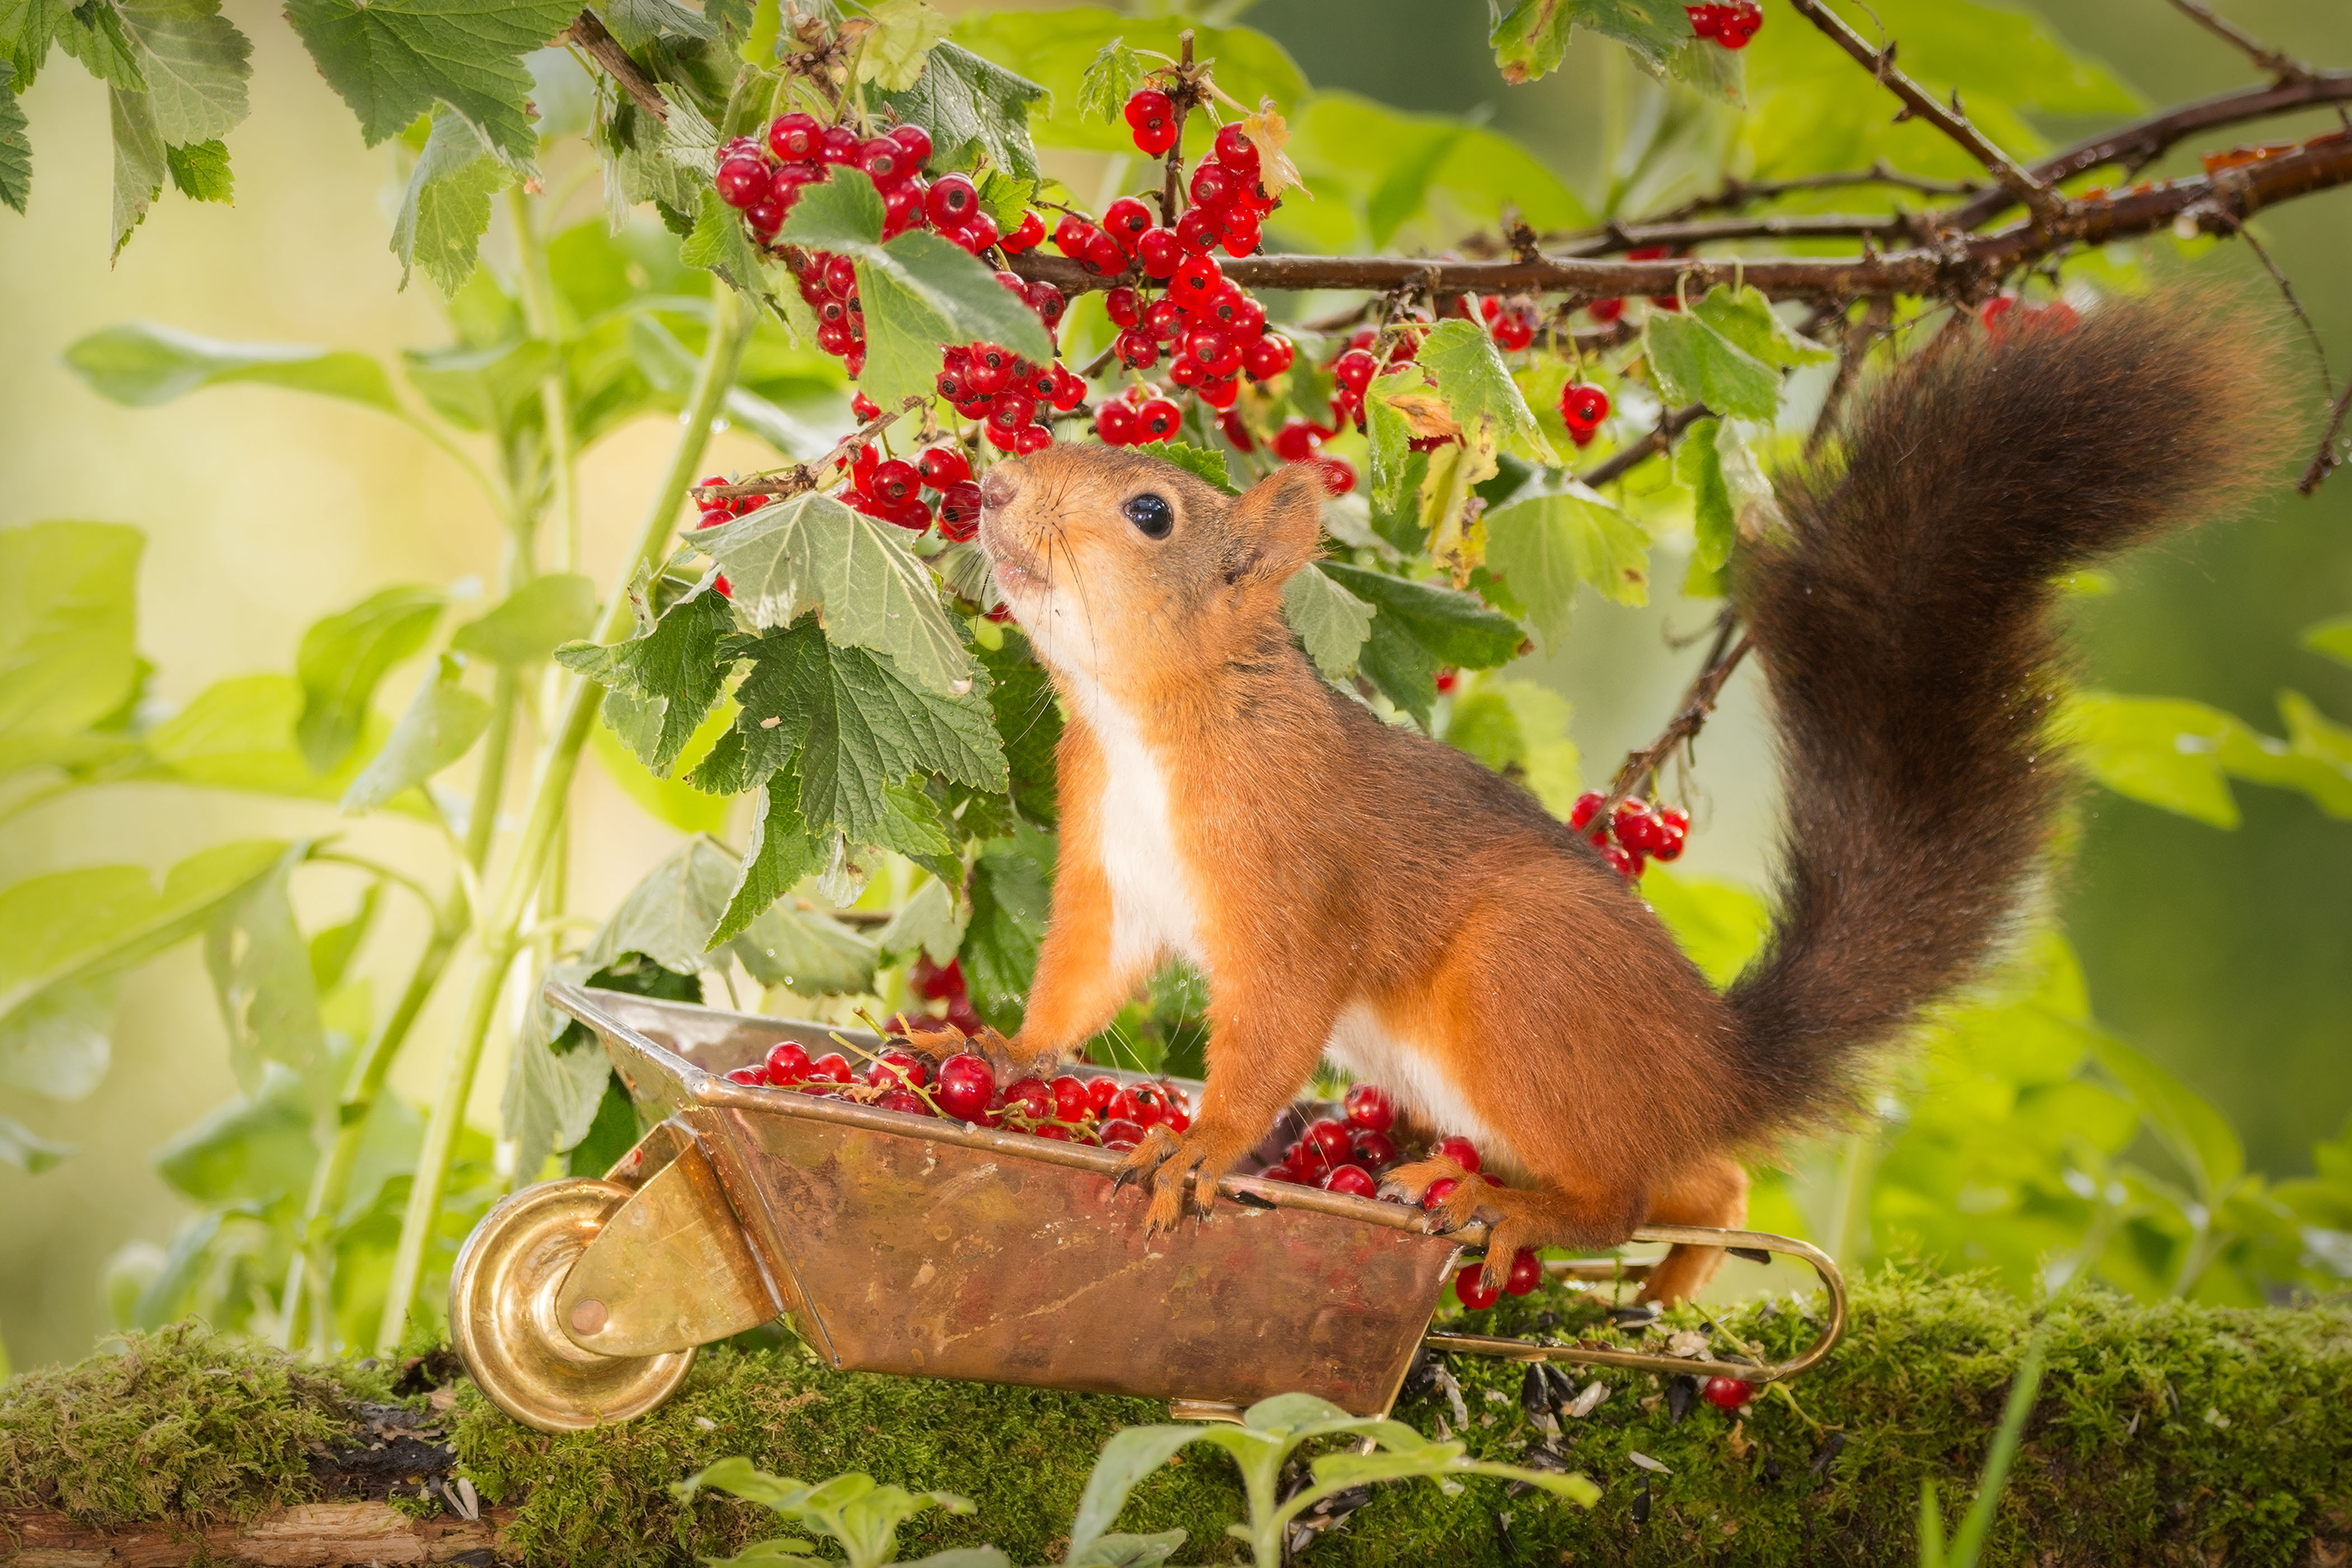 These squirrels are so excited for Autumn - Caters News Agency